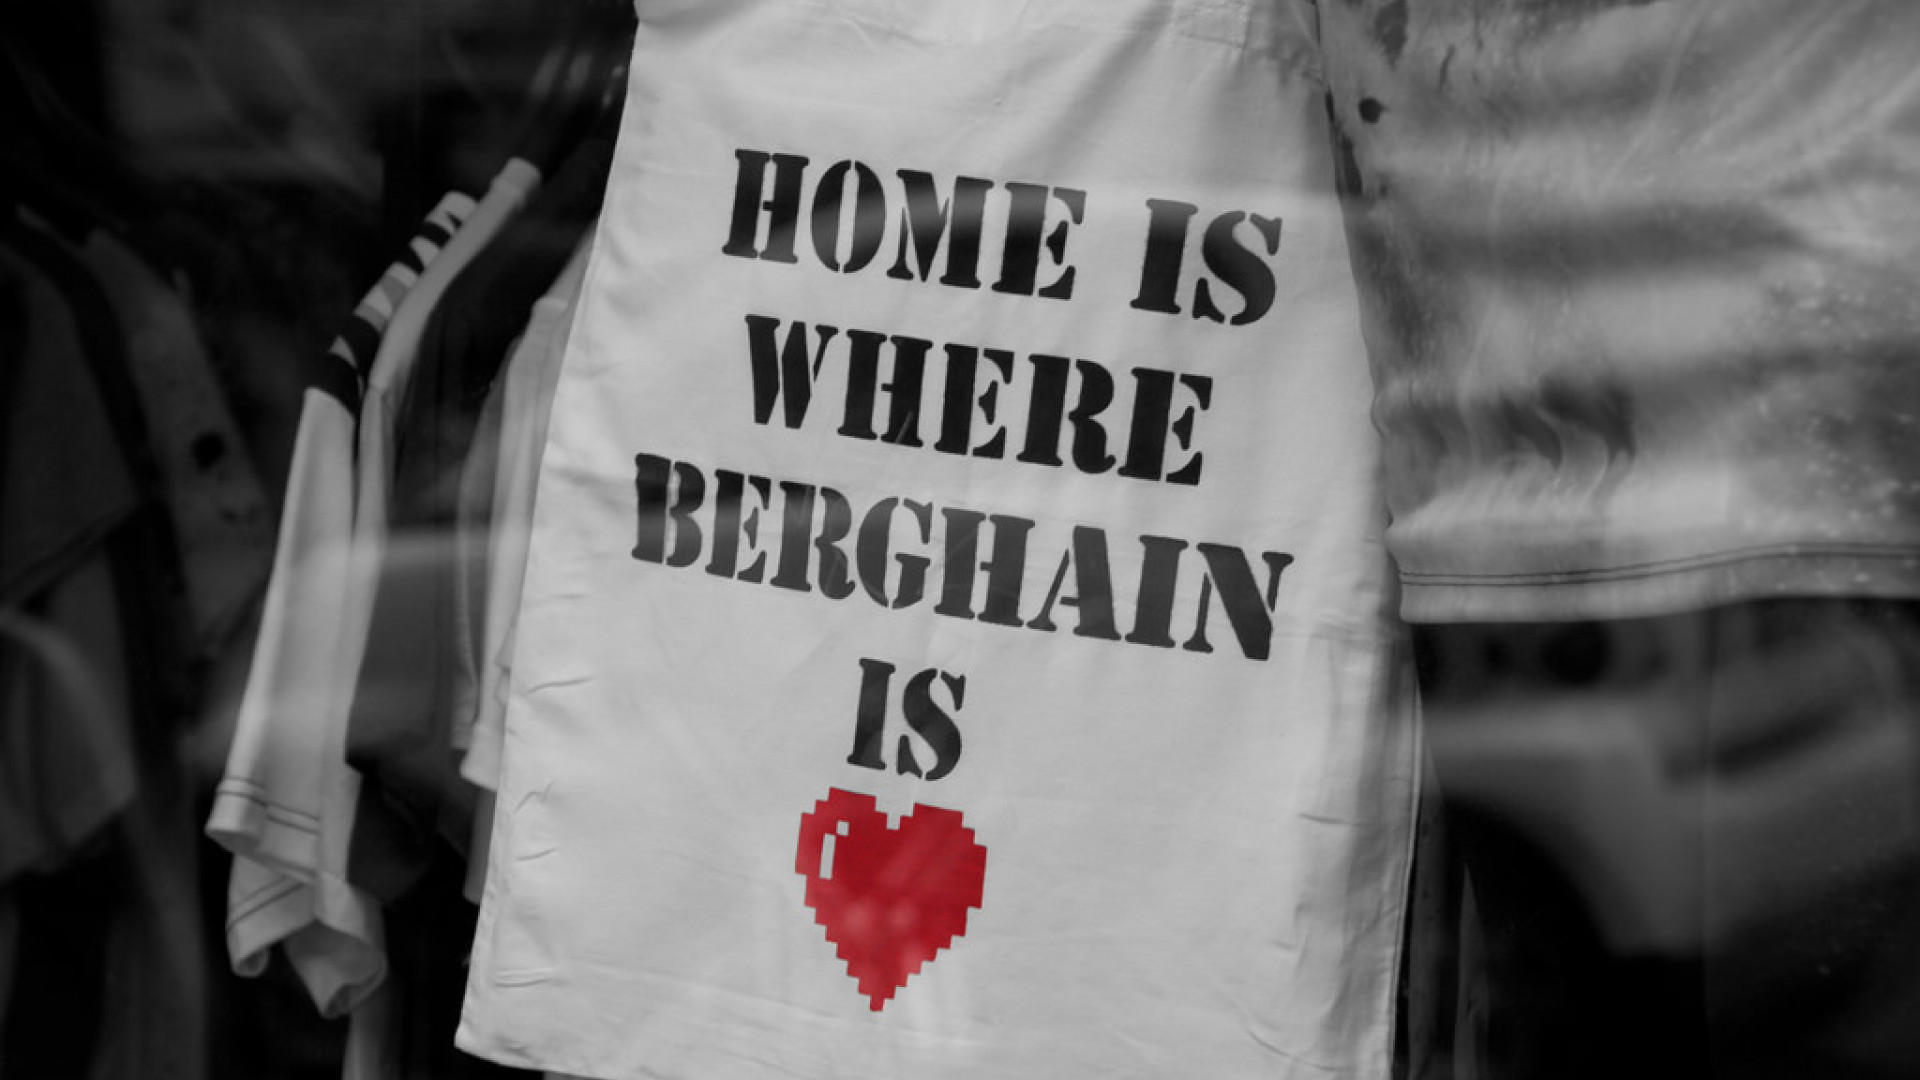 Tote bag for Berghain, Germany